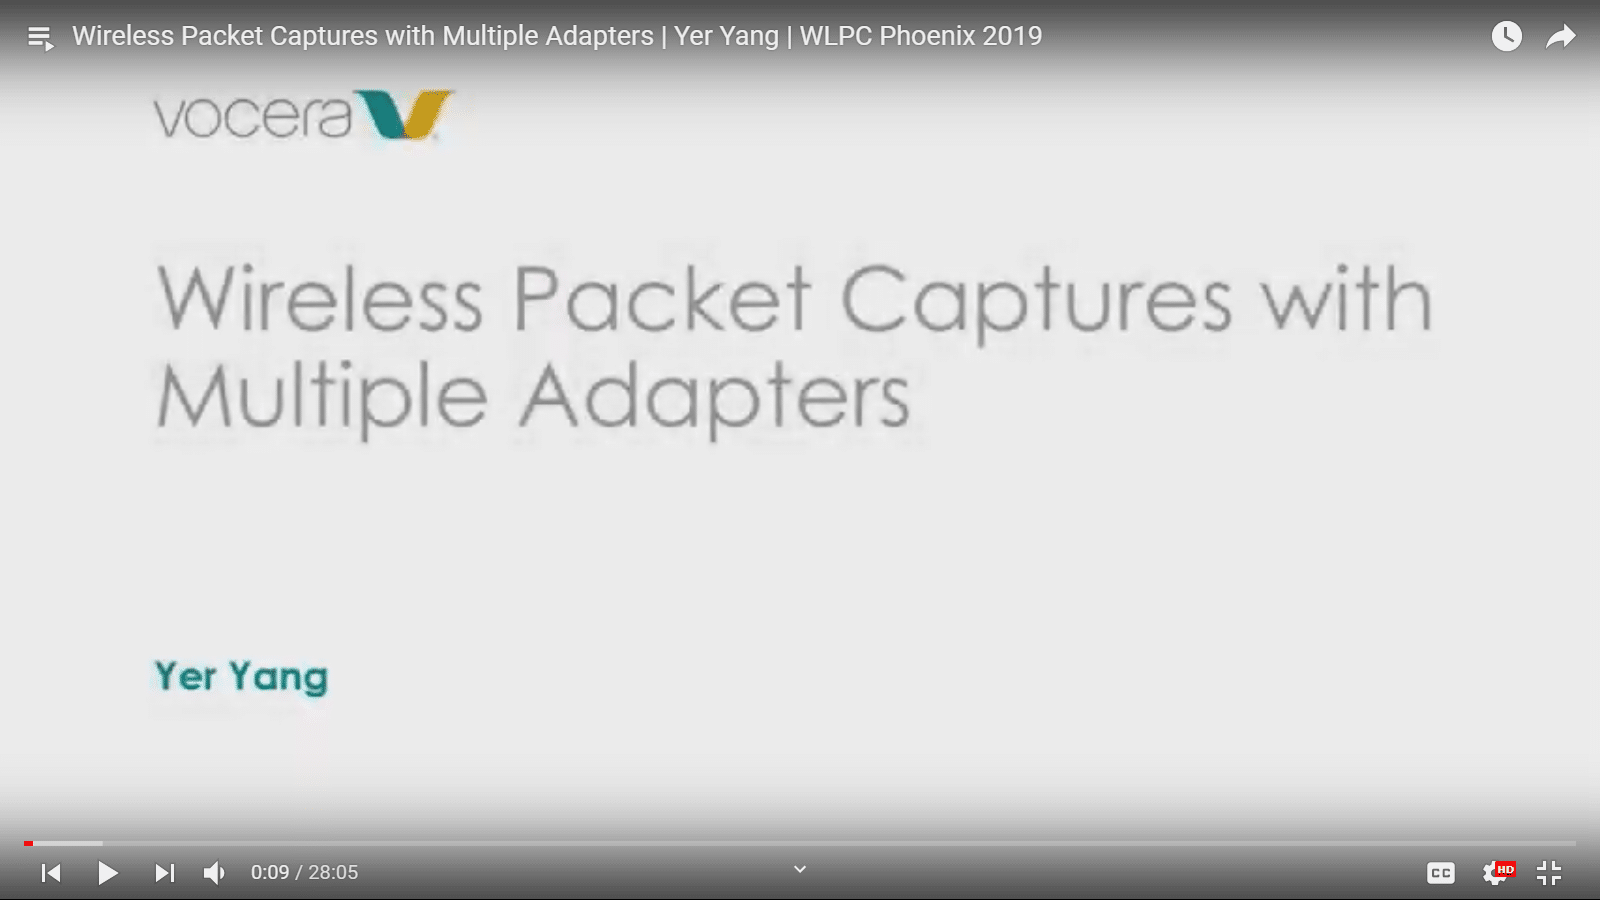 Wireless Packet Captures with Multiple Adapters | Yer Yang | WLPC Phoenix 2019